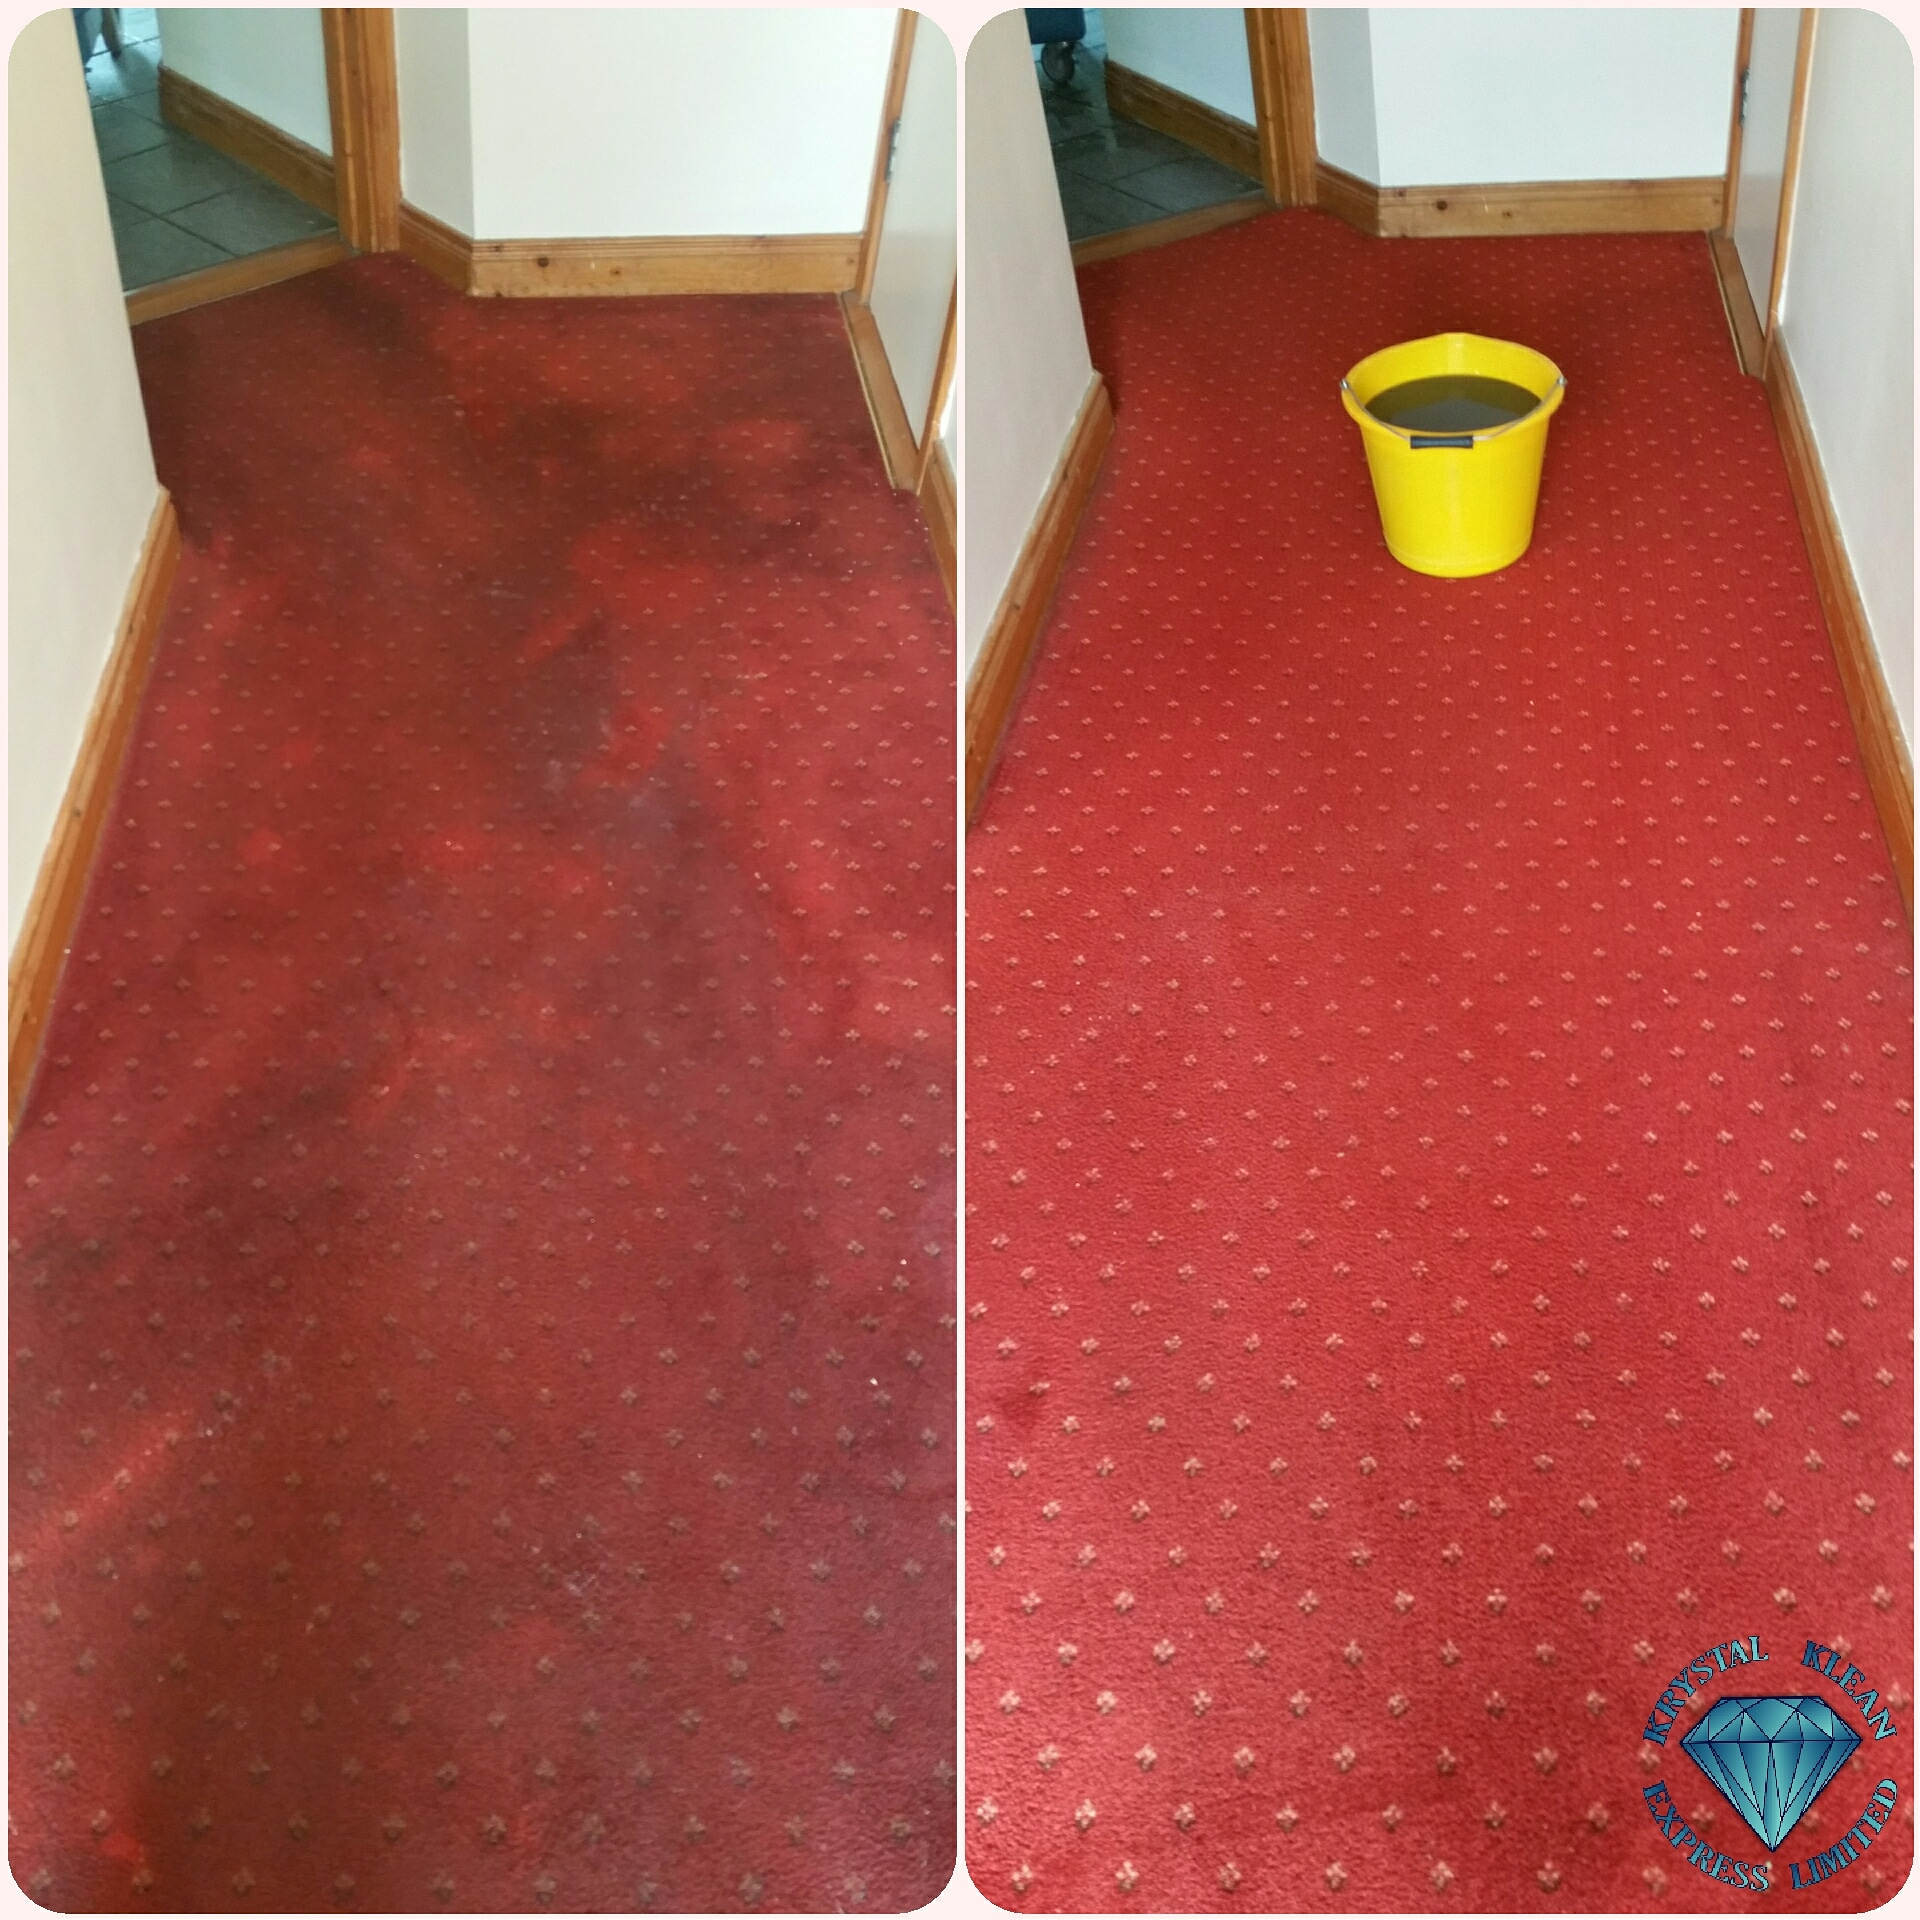 Blanchardstown Carpet Cleaning CARPET CLEANING Blanchardstown